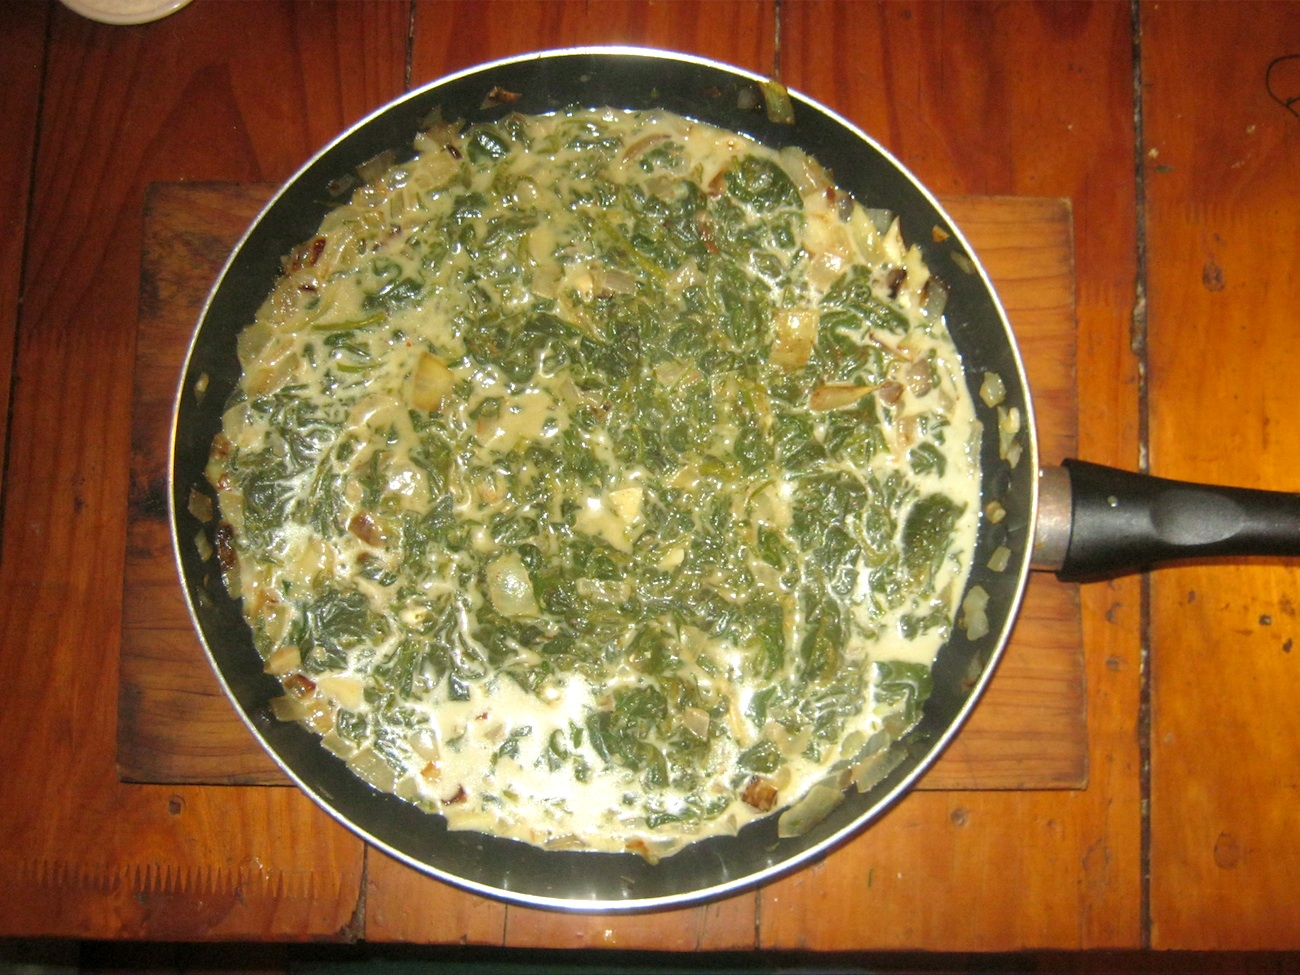 Cape Dune Spinach in cream sauce